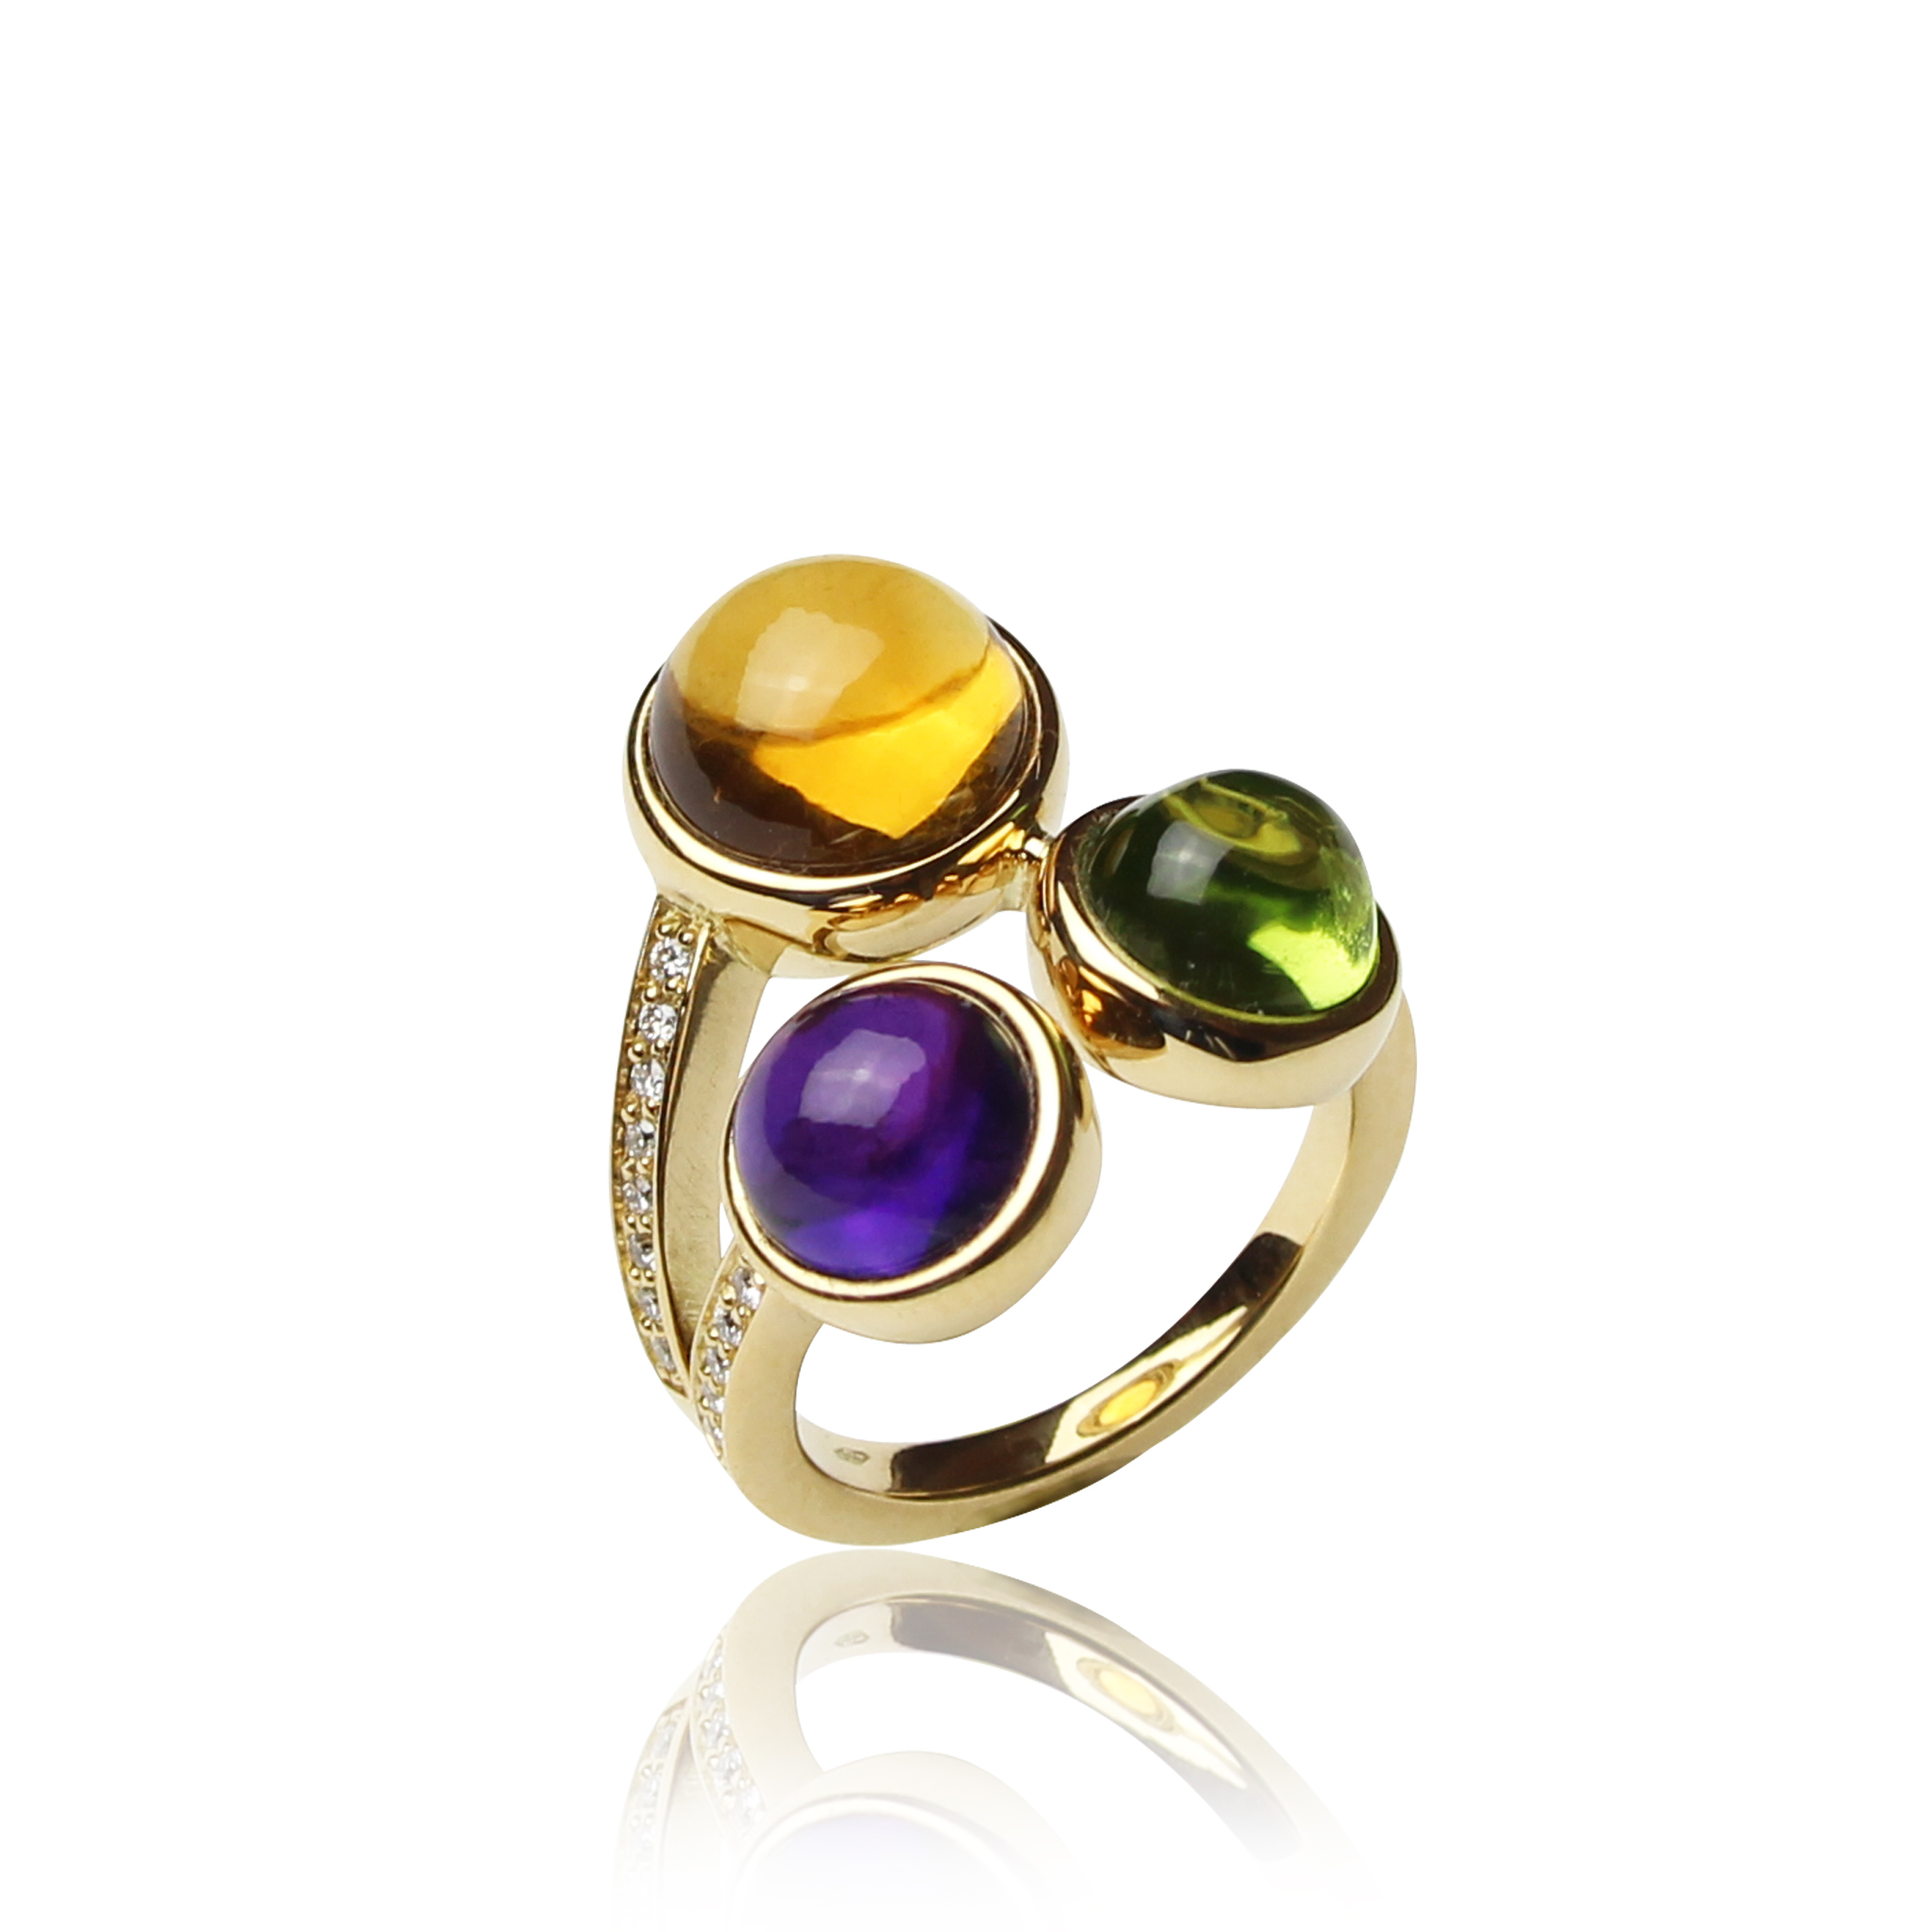 ring arcobaleno yellow gold 18 carat ,citrine ,peridot amethyst and diamonds